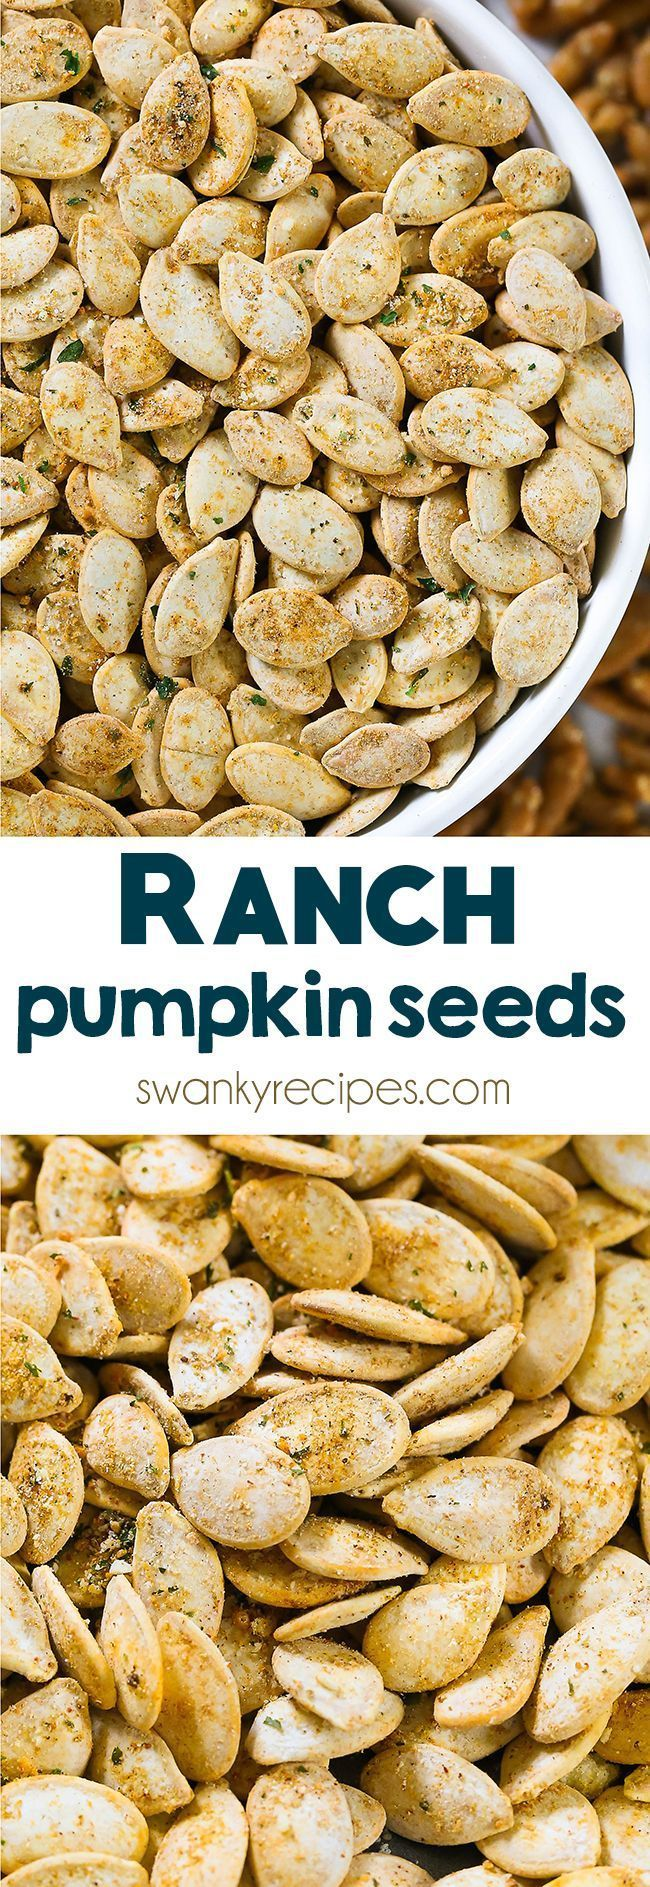 Ranch Pumpkin Seeds - Quick and easy roasted pumpkin seeds with a zesty ranch blend. You'll fall in love with this healthy Ranch Pumpkin Seed recipe. Perfect pumpkin seed snack this autumn. #roastedpumpkinseedsrecipe Ranch Pumpkin Seeds - Quick and easy roasted pumpkin seeds with a zesty ranch blend. You'll fall in love with this healthy Ranch Pumpkin Seed recipe. Perfect pumpkin seed snack this autumn. #roastedpumpkinseeds